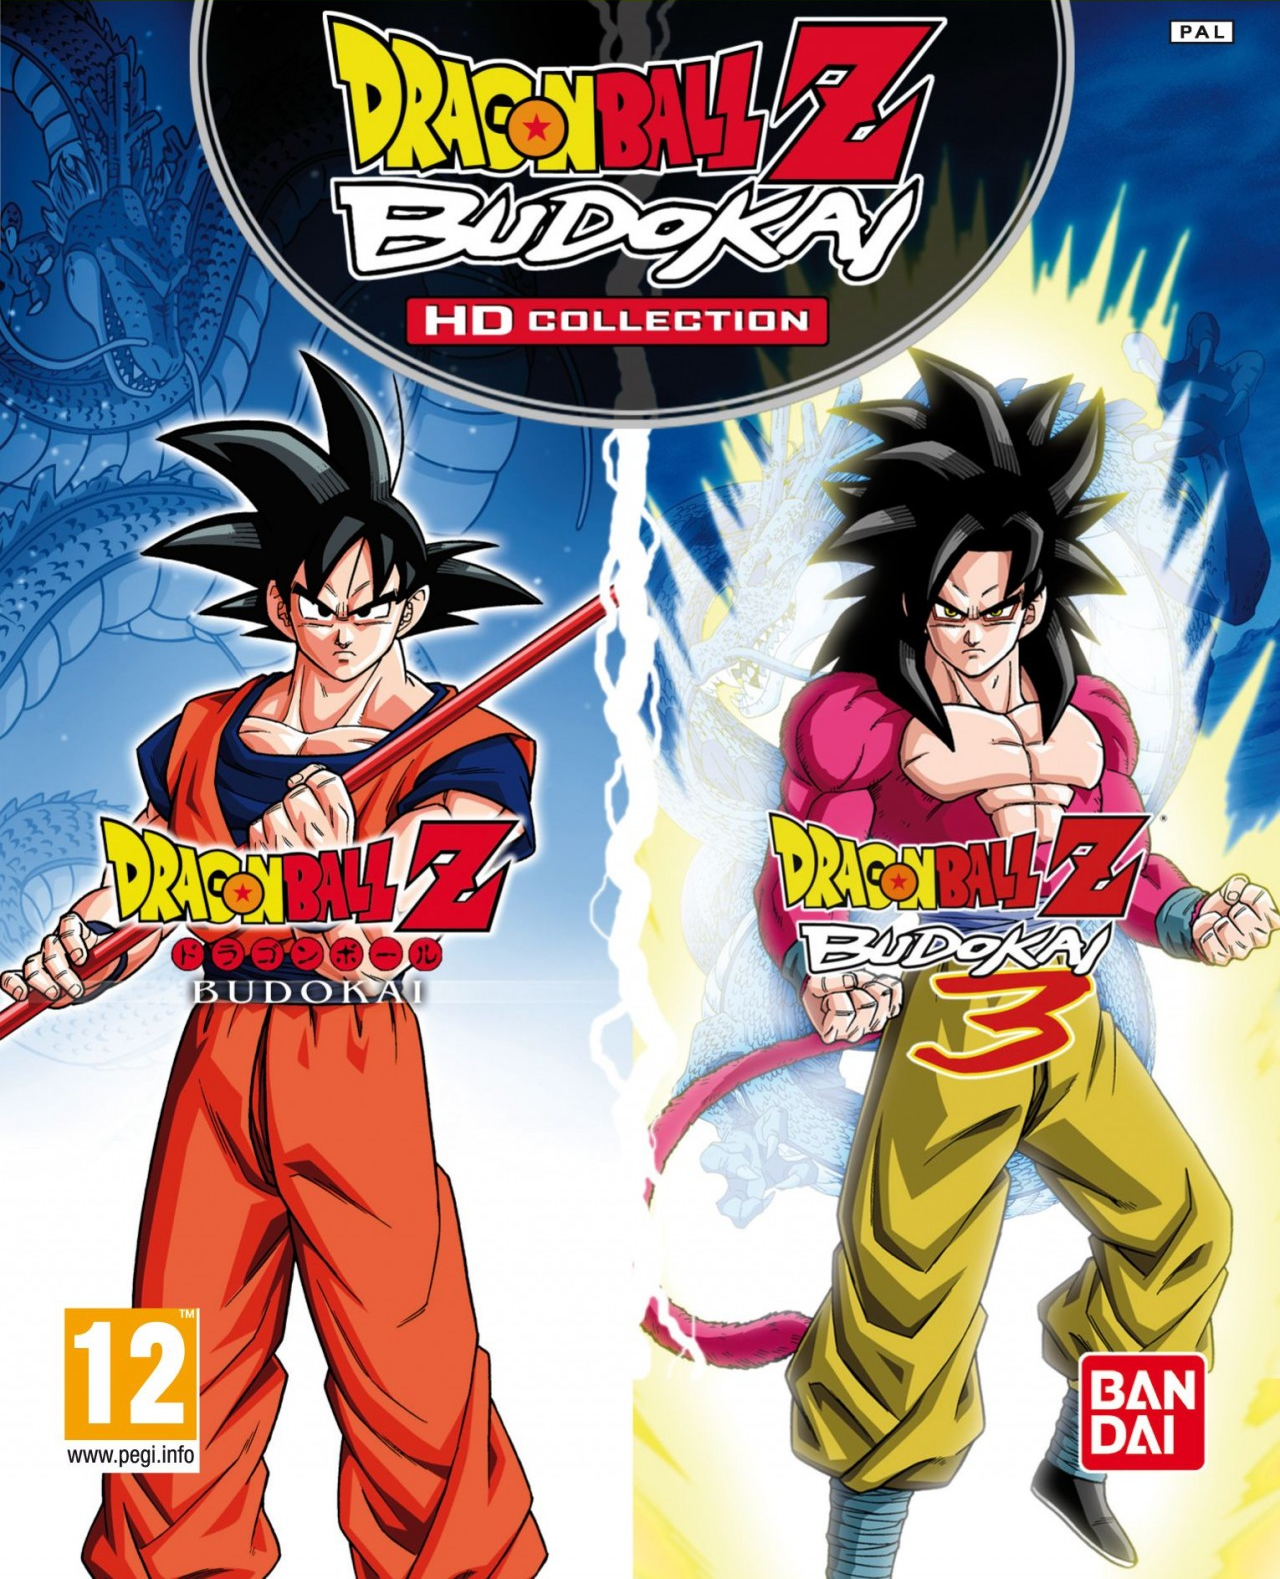 Dragon Ball Z Budokai HD Collection Comprar Buy